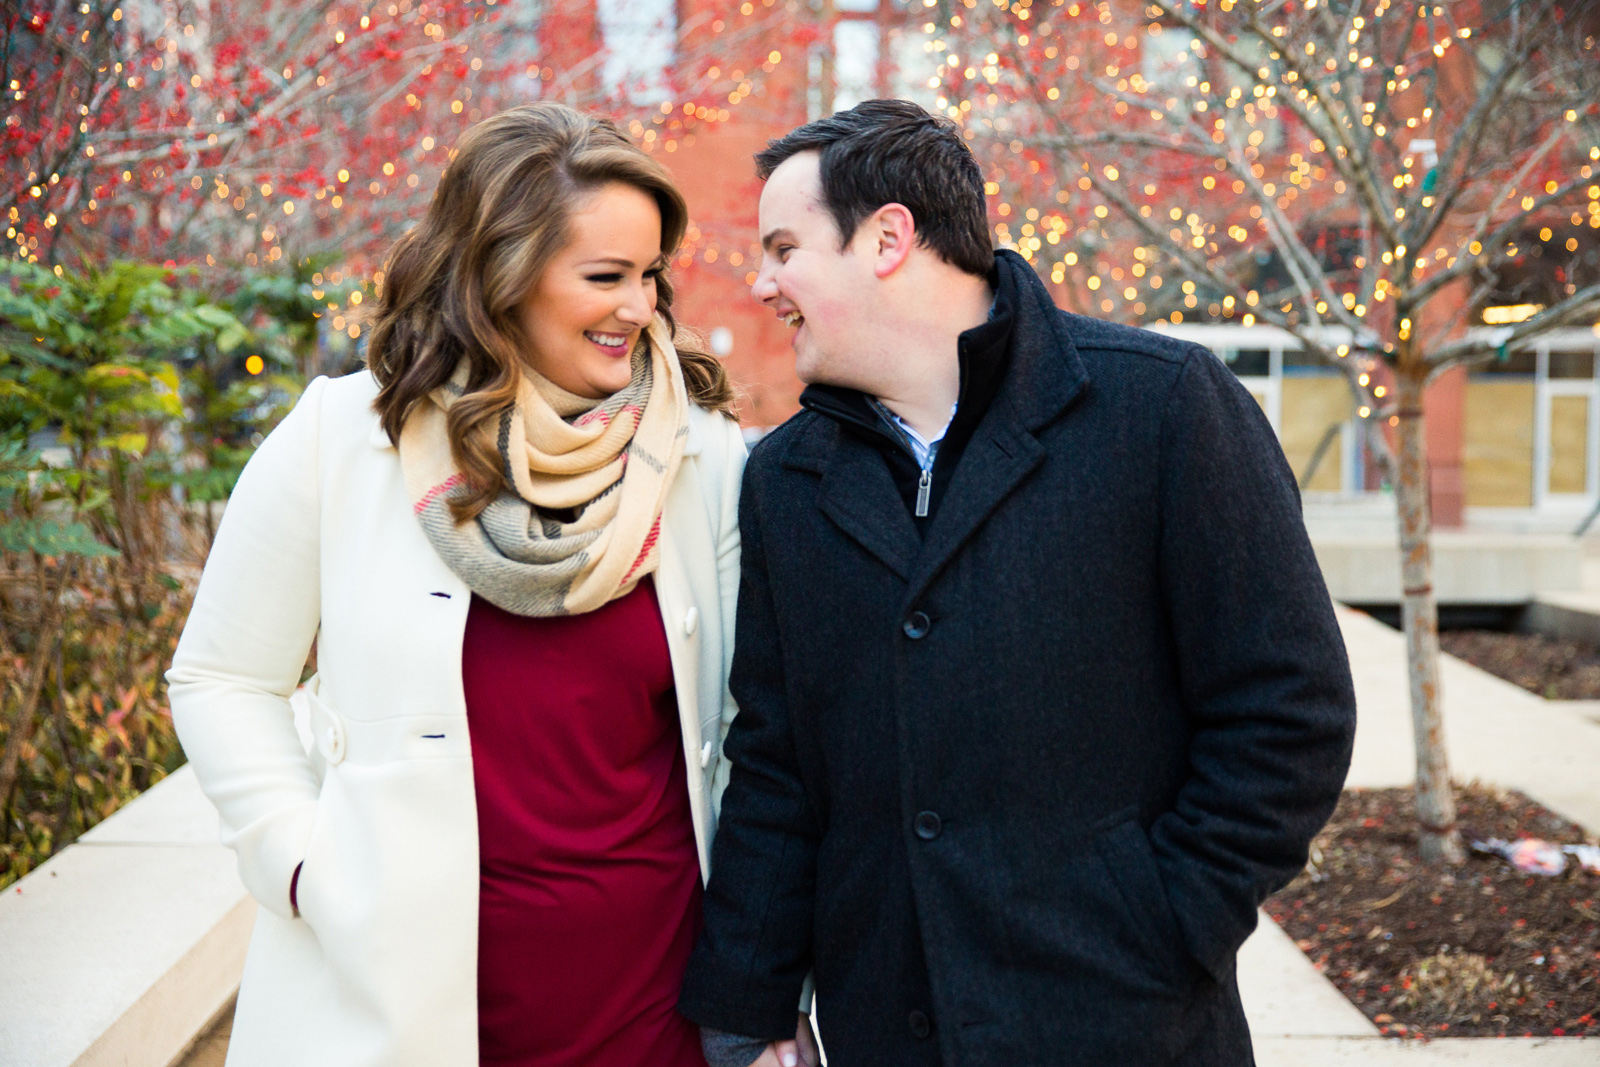 St_Louis_Old_Post_Office_Engagement_Session_20141229_163551.jpg